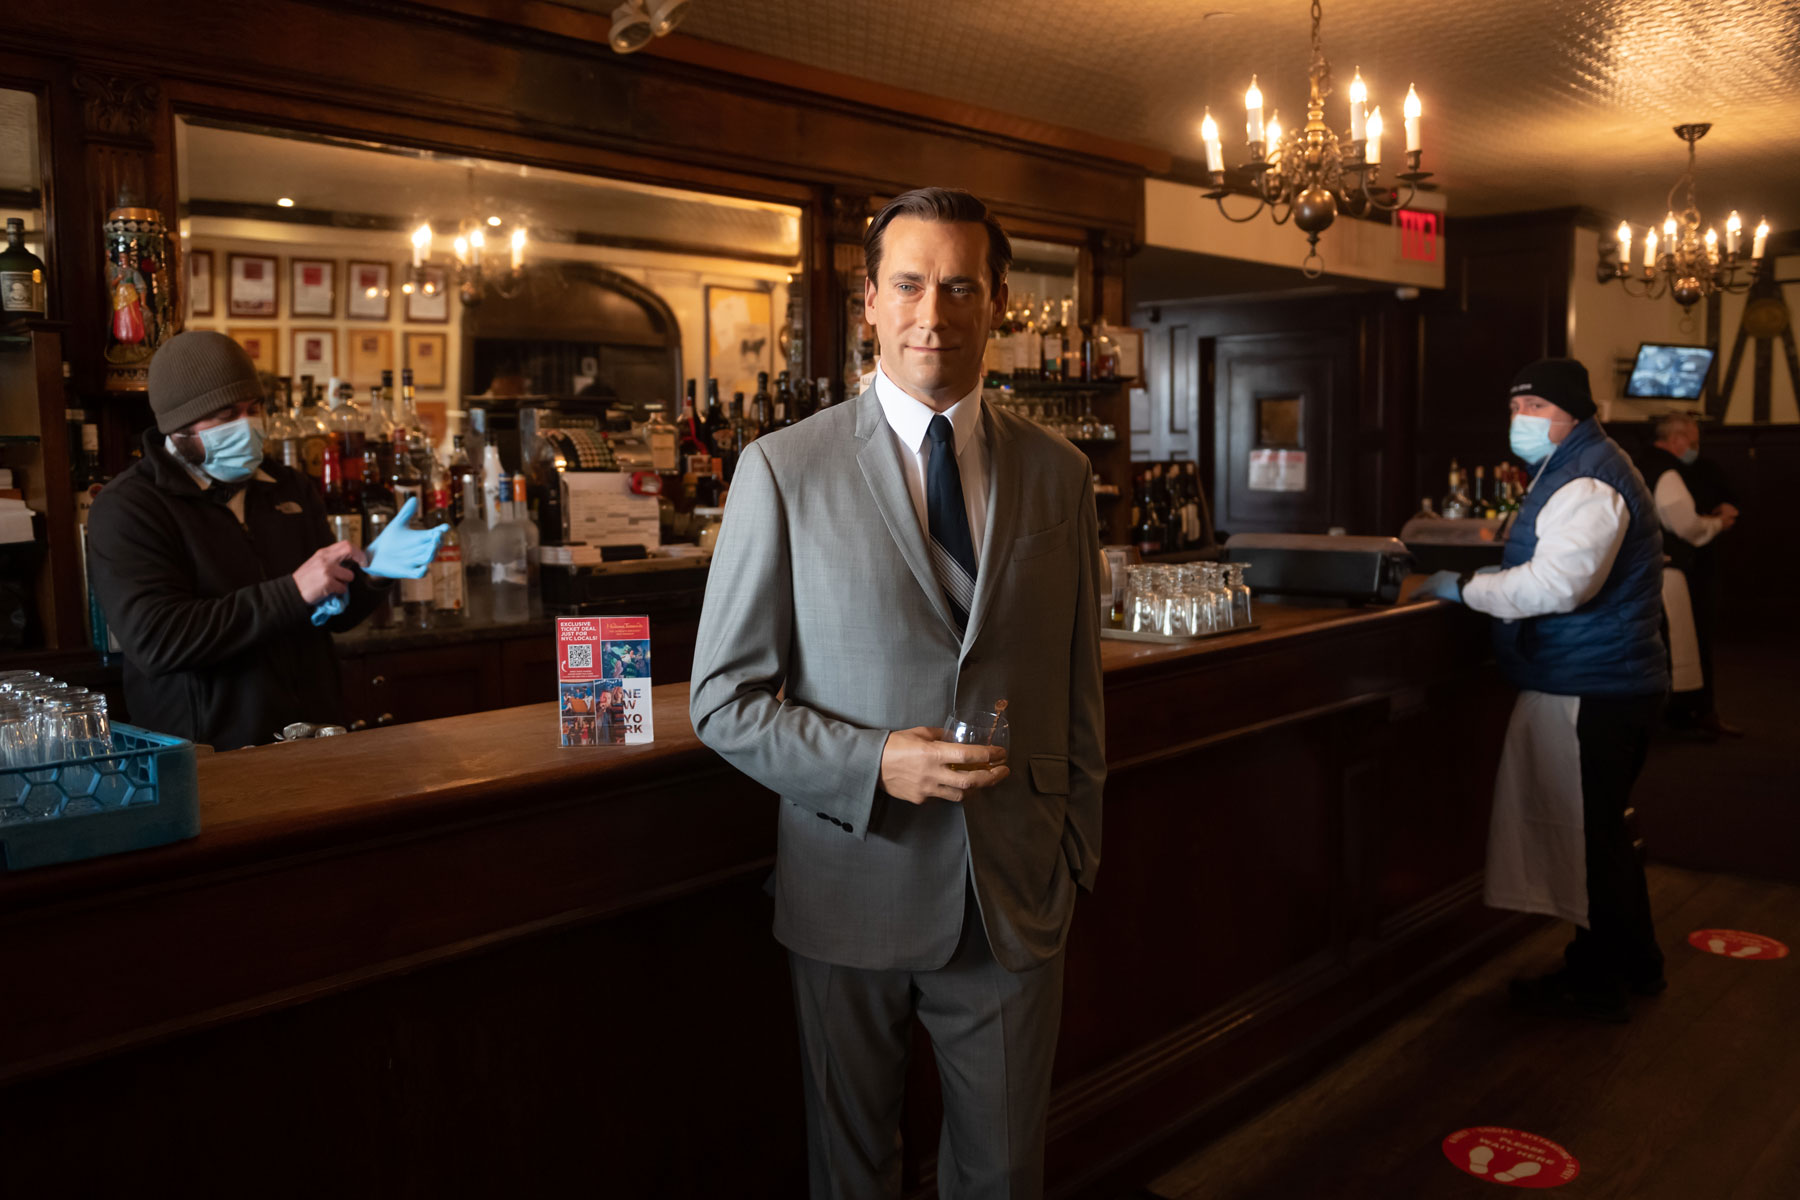 Madame Tussaud's Jon Hamm wax figure holds a glass of whiskey by the bar